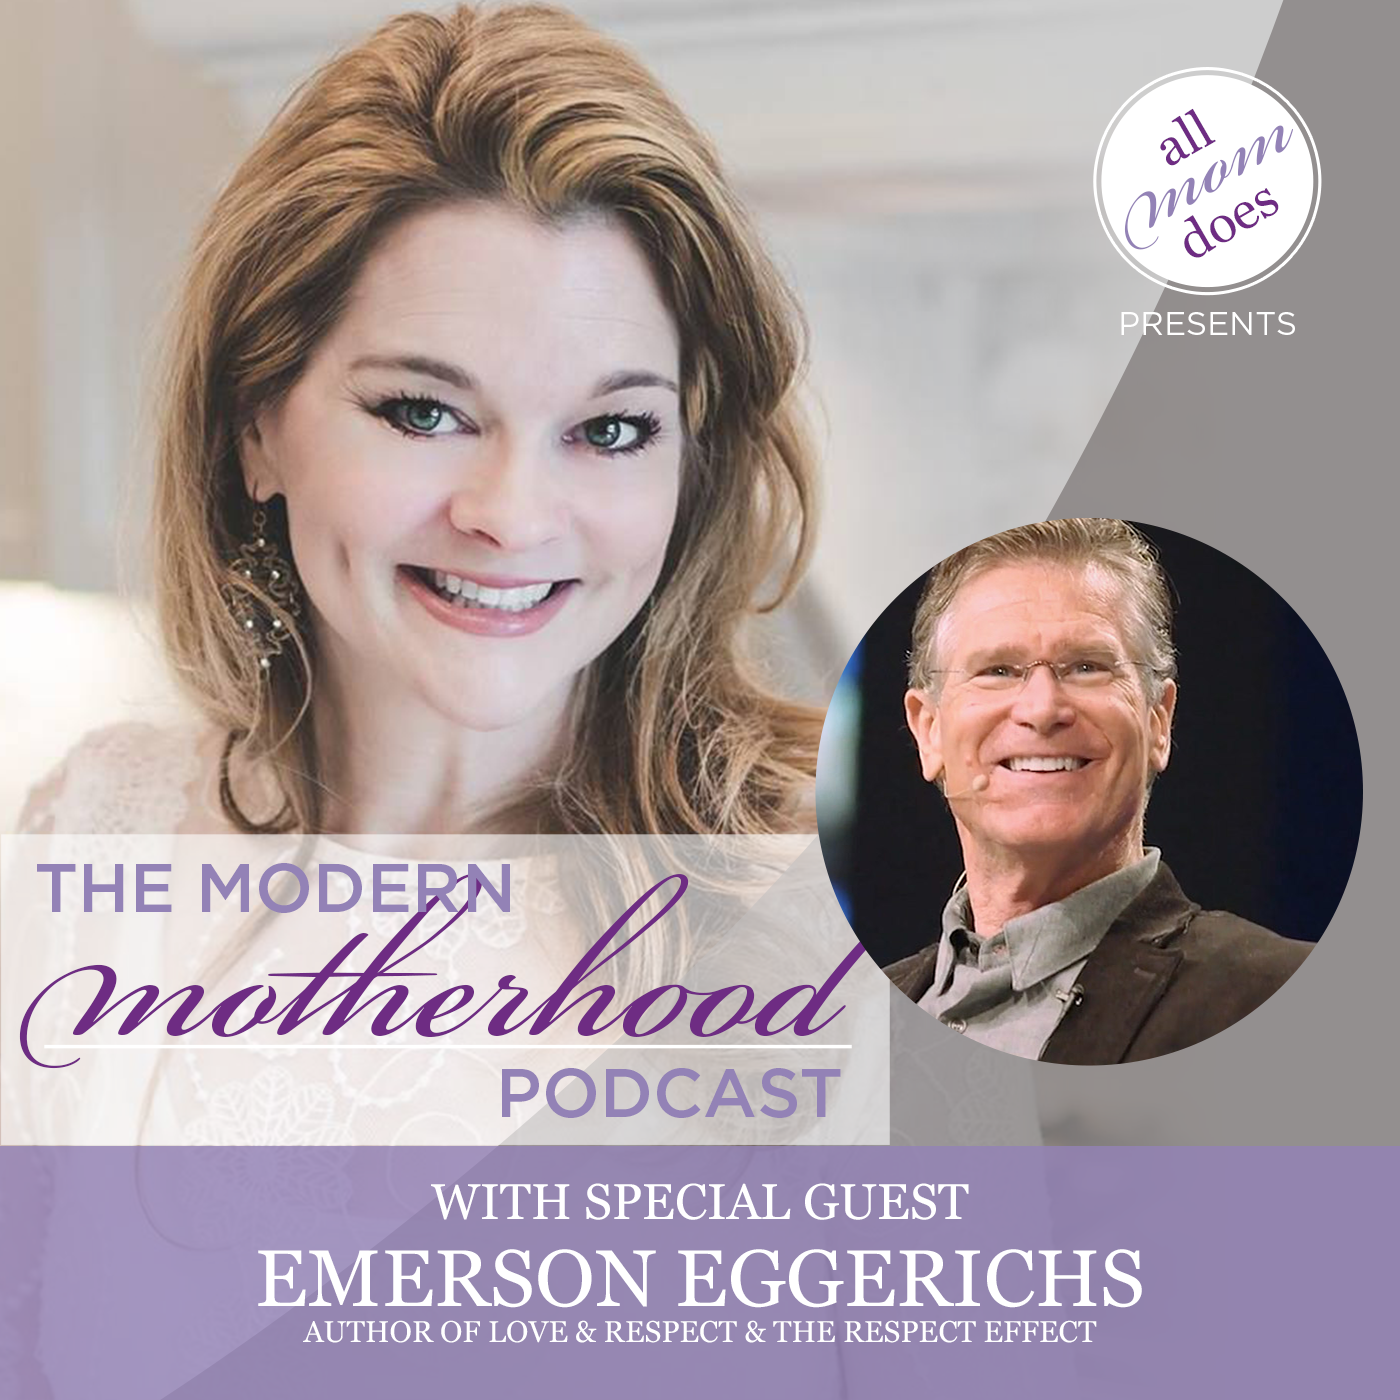 The Modern Motherhood Podcast #19: Emerson Eggerichs